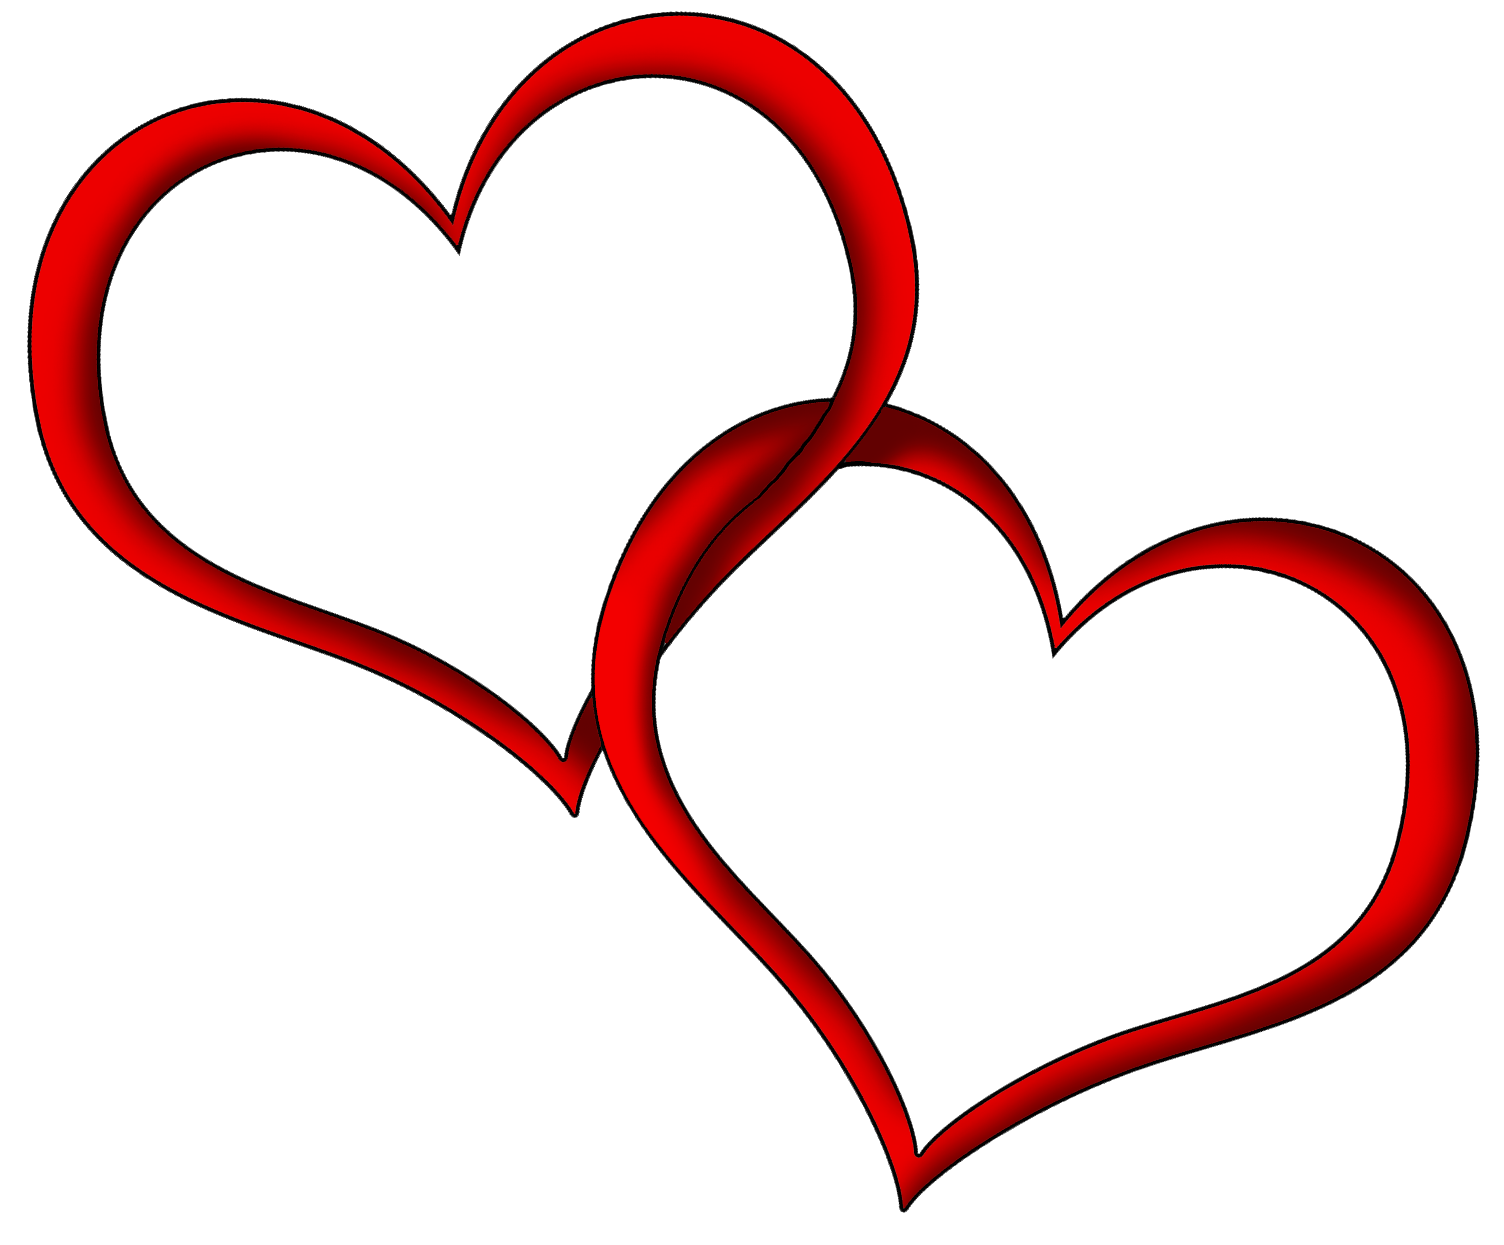 1504x1245 Heart Images Hearts Clipart Love Heart Free Images